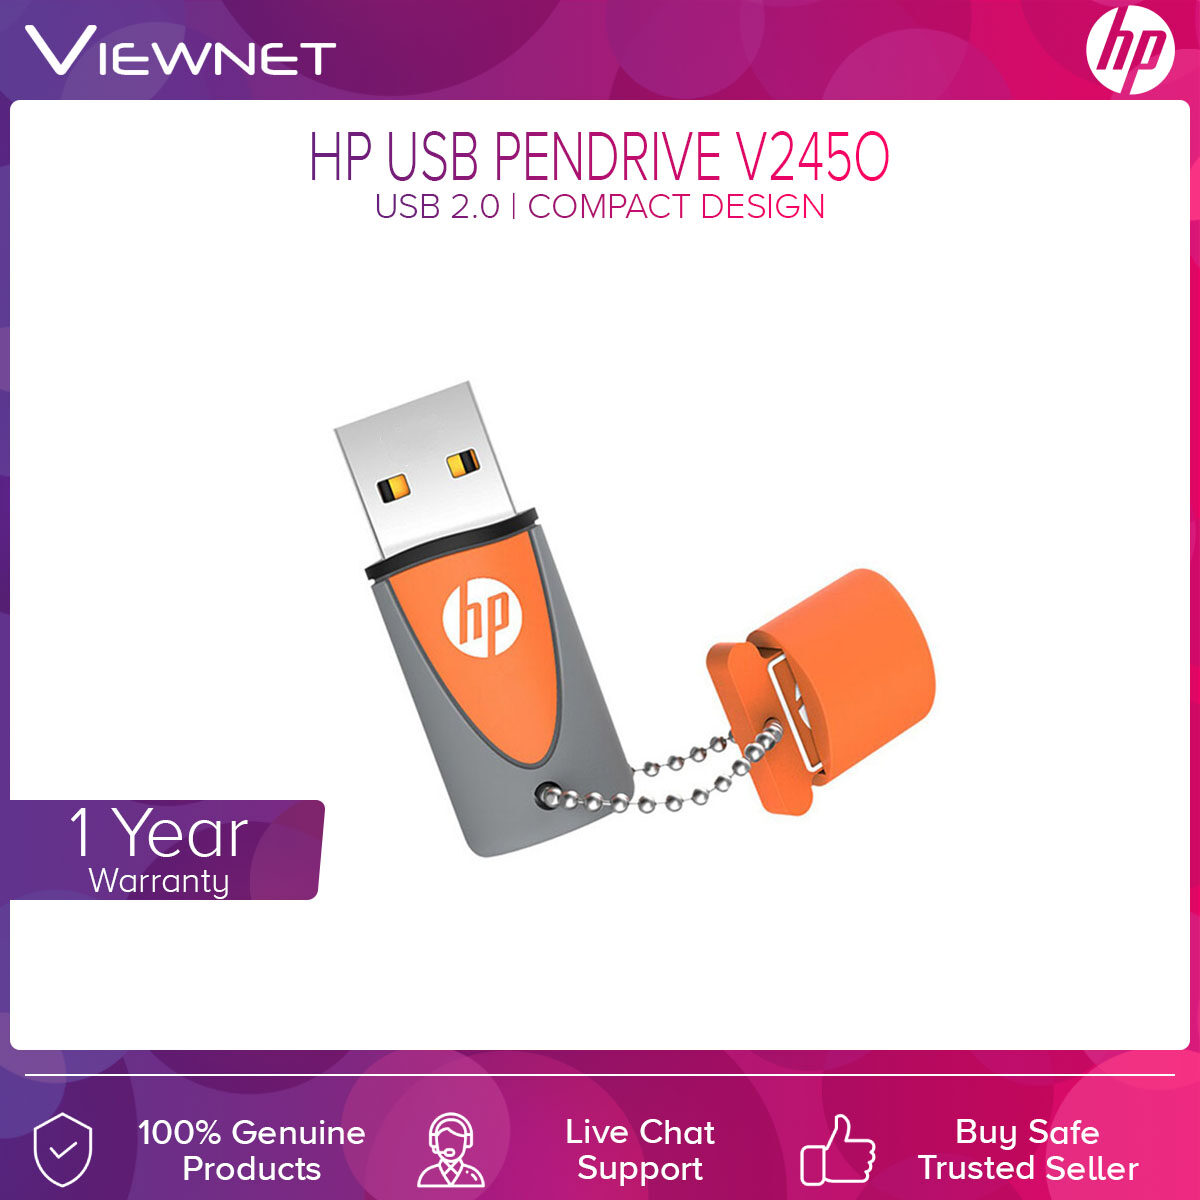 HP USB Pendrive X245O with USB 2.0 Connection, Compact Design, Durable Rubber Material